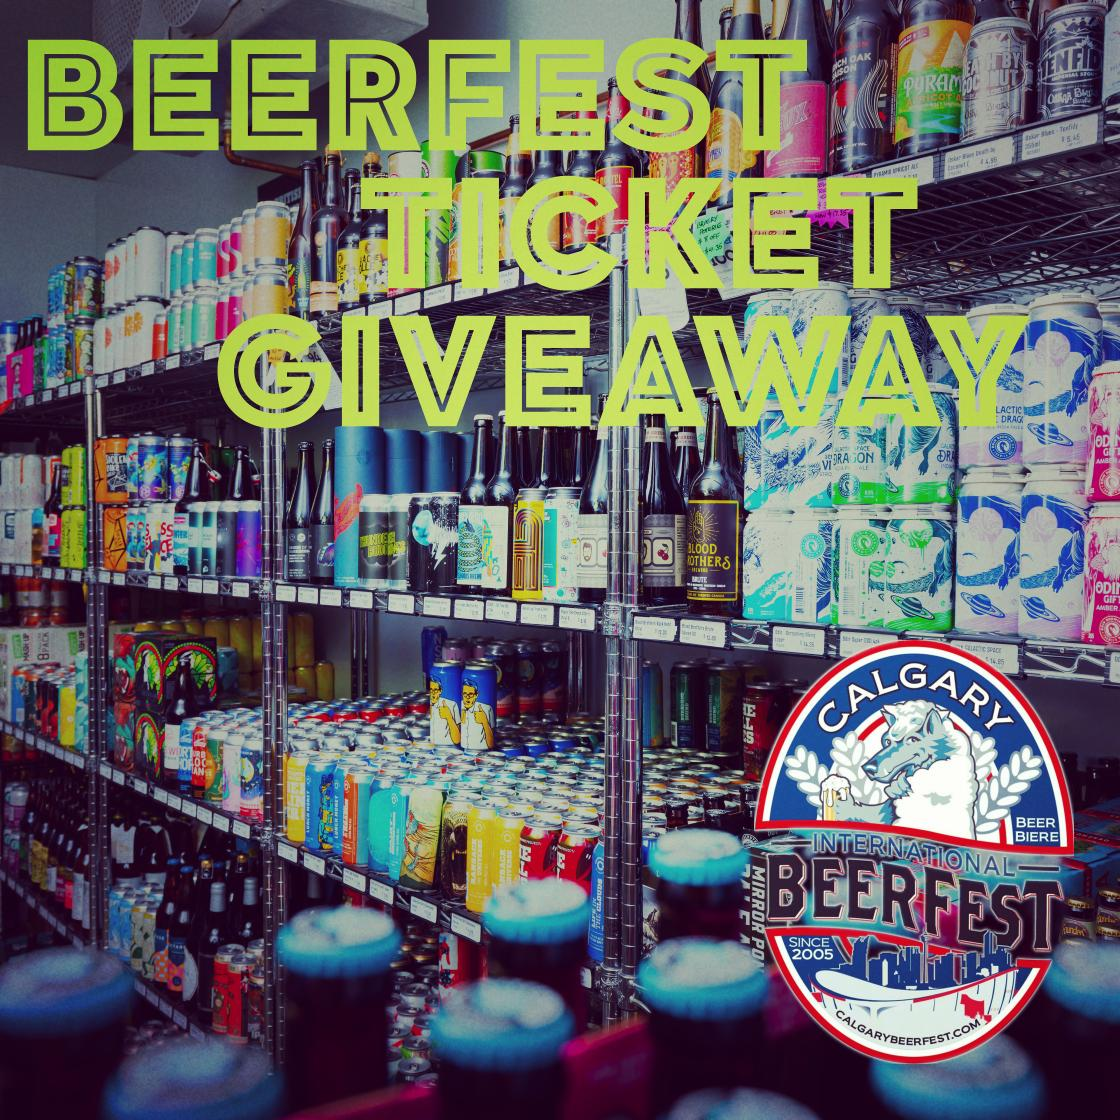 Its giveaway time thanks to @freeholdbrewing & @ABBEERFESTIVALS . 2 sets of Friday Beerfest tickets for you and a pal! . 1) Follow @5_vines + @freeholdbrewing + @abbeerfestivals 2) Tag your partner-in-crime to come to the event! 3) We'll draw 2 lucky winners on Thursday at noon.